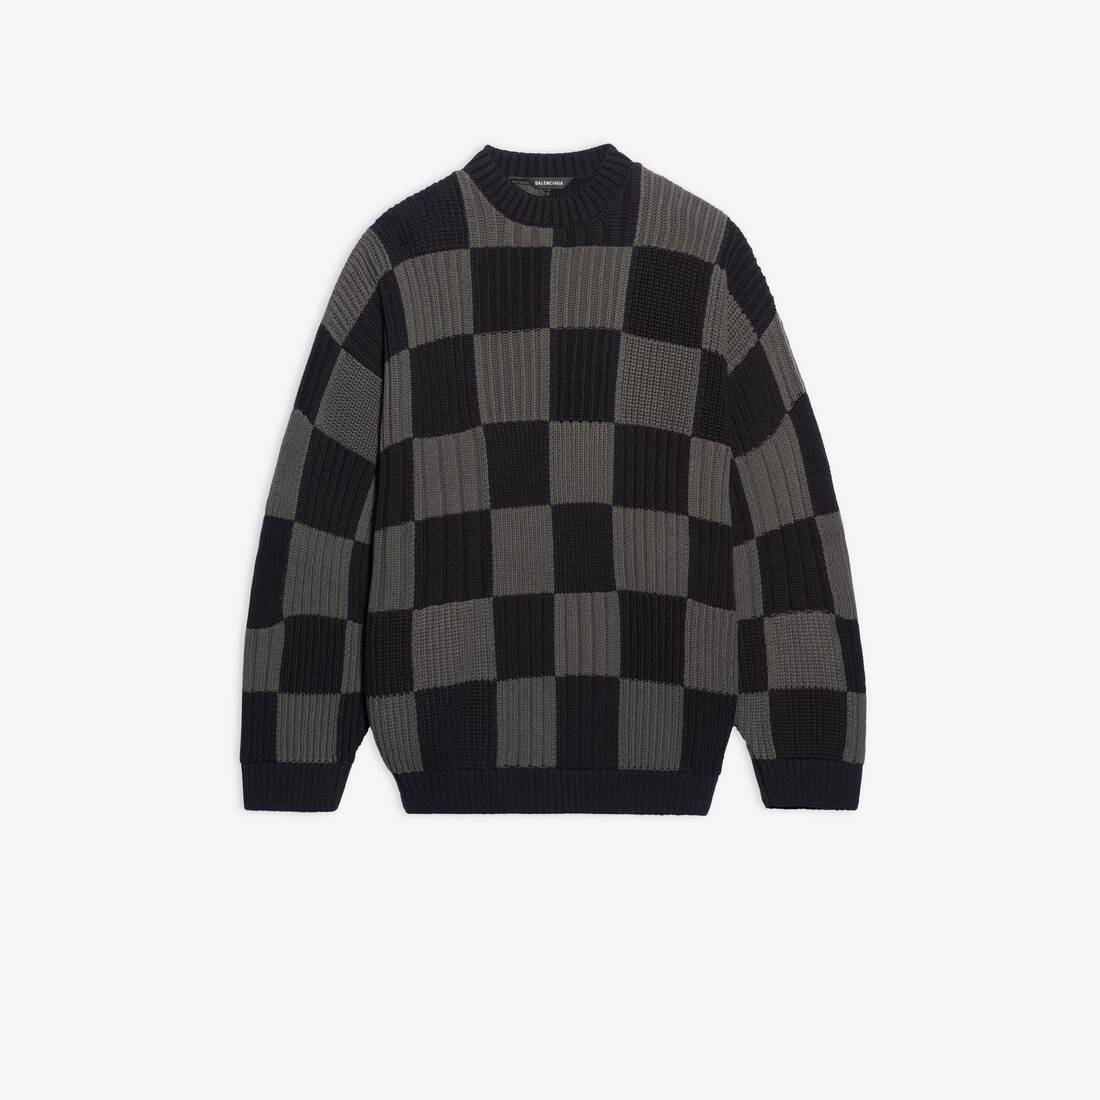 Display zoomed version of checkered crewneck 1